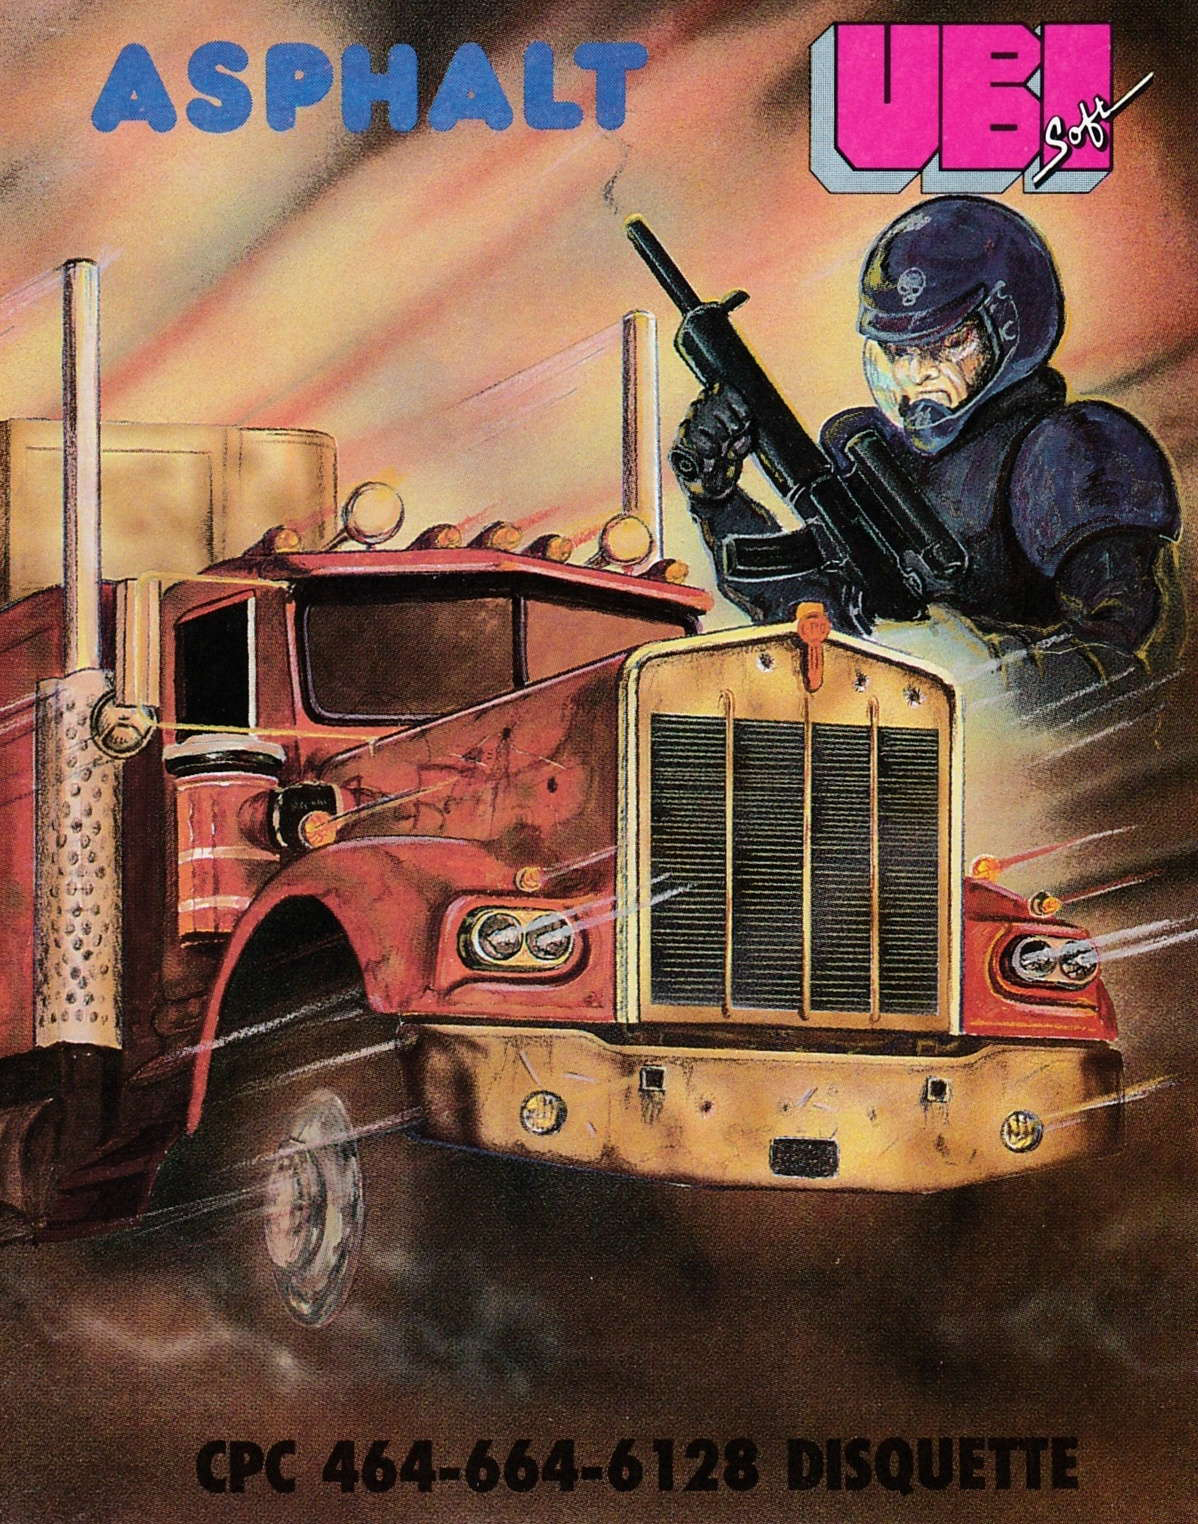 cover of the Amstrad CPC game Asphalt  by GameBase CPC